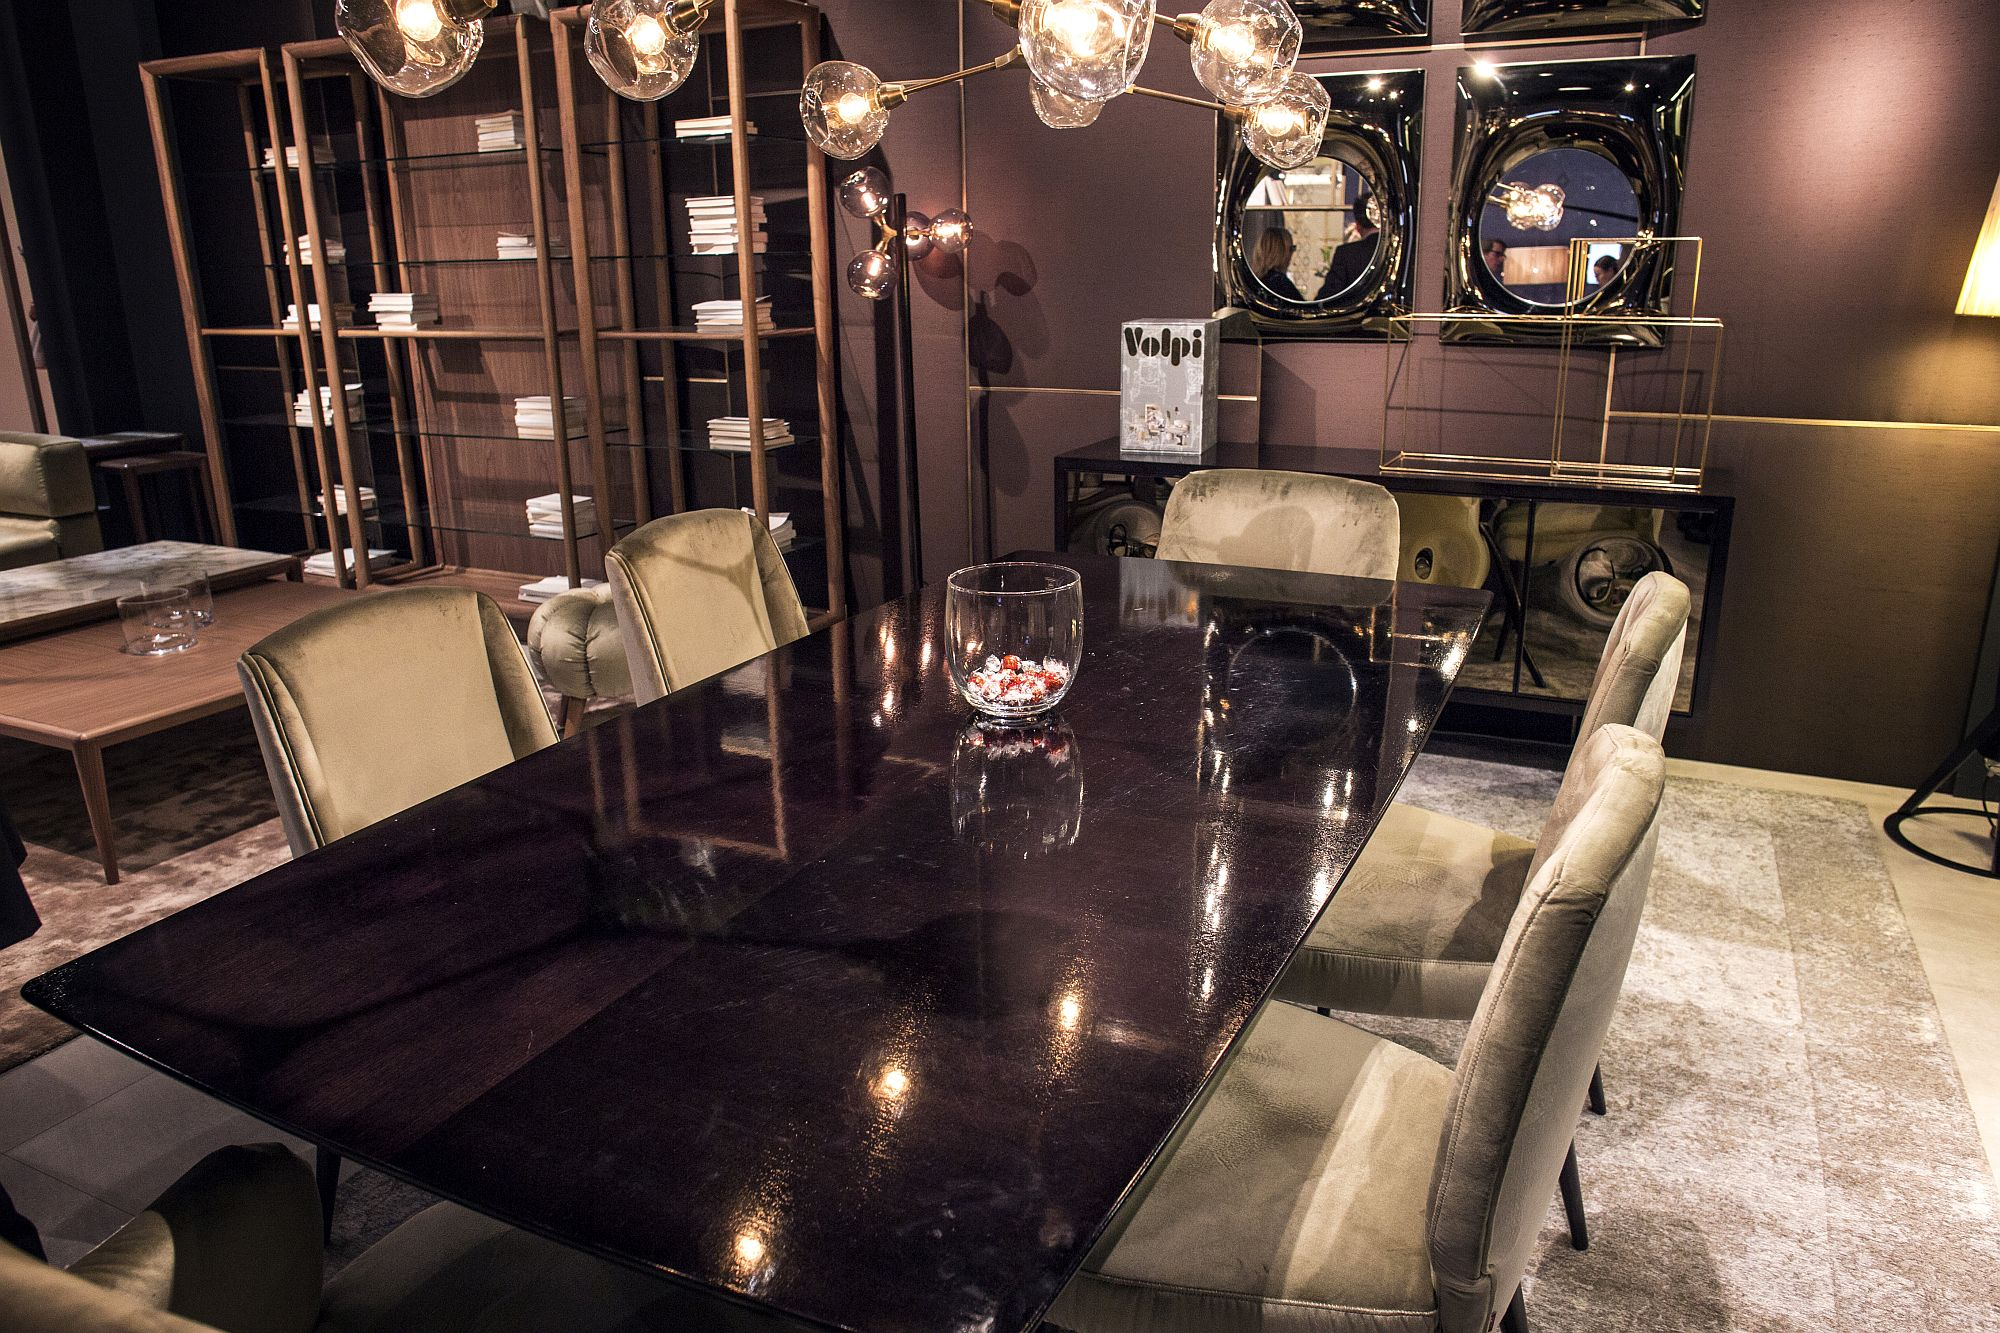 Volpi-brings-an-air-of-exquisite-elegance-to-the-modern-dining-room